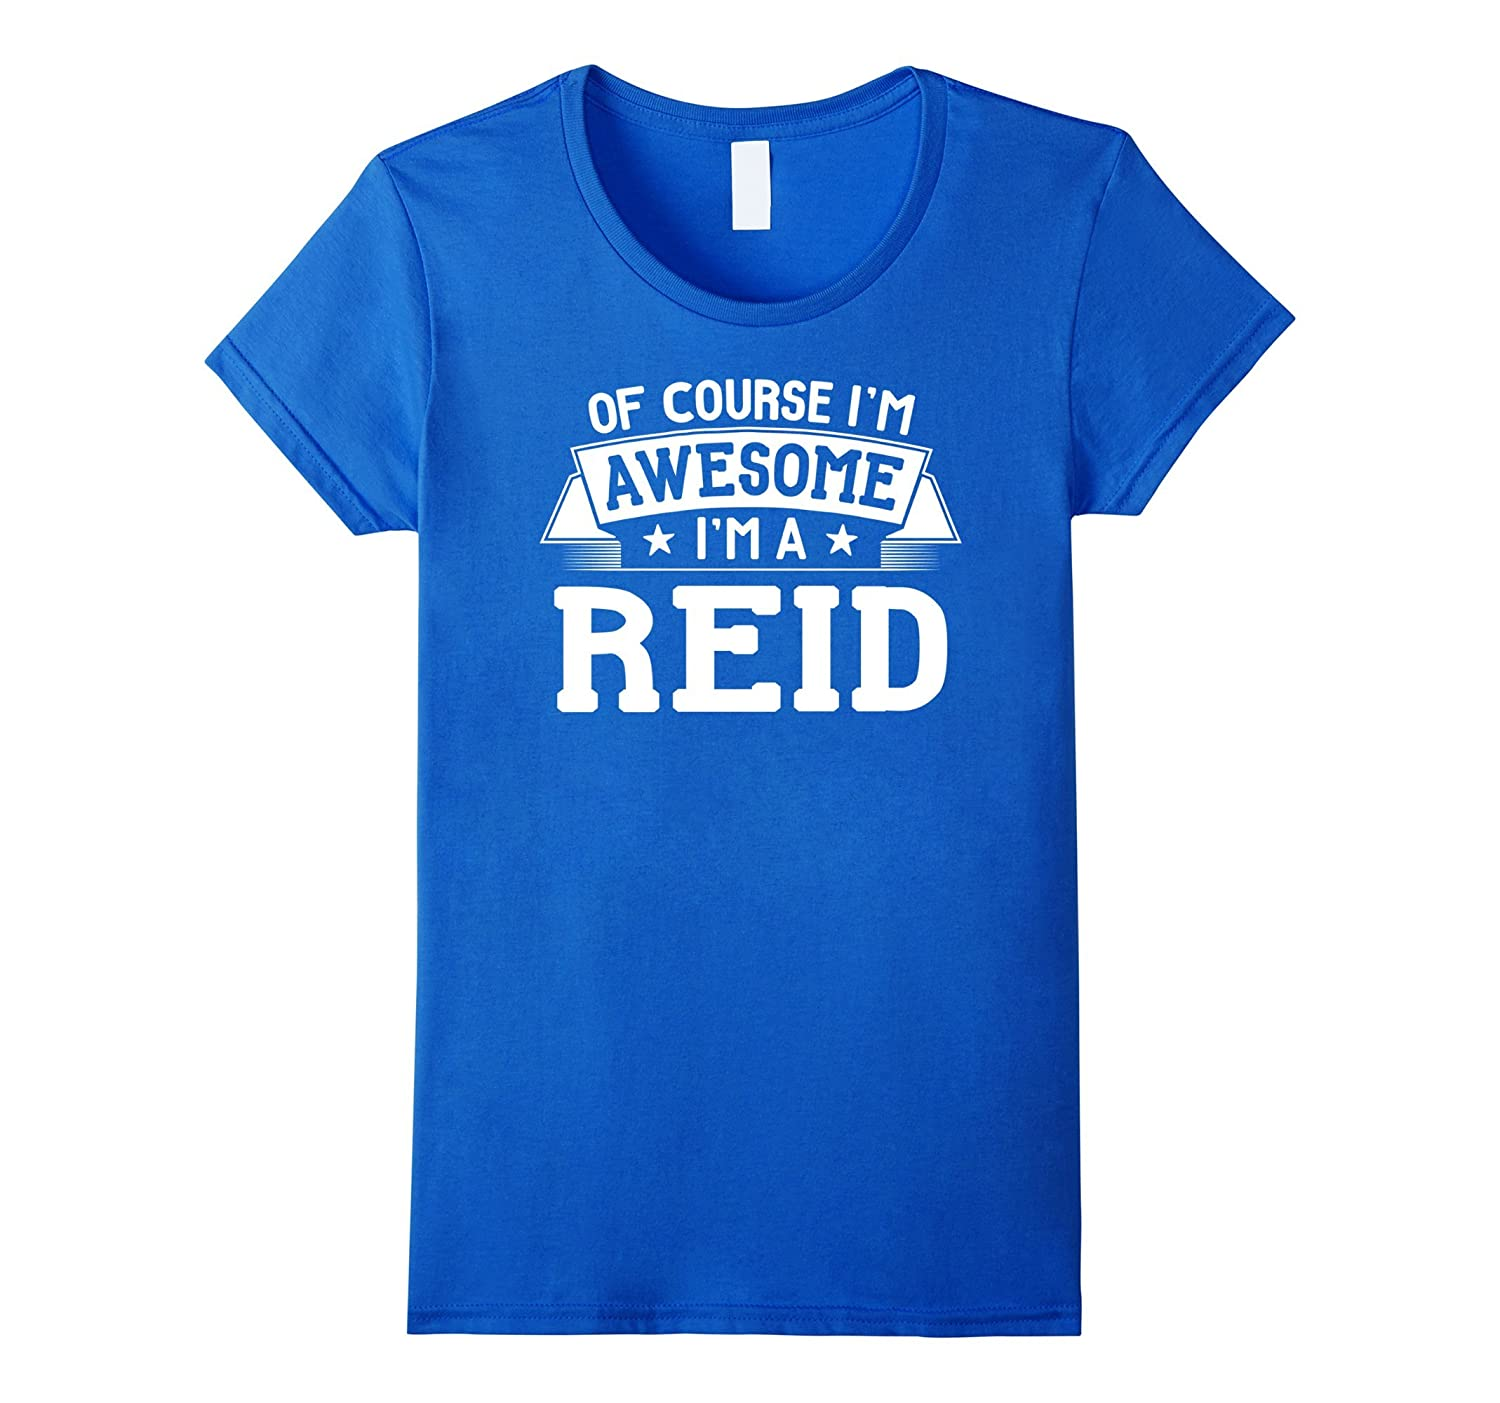 Reid T-Shirt First or Last Name – Of Course I'm Awesome